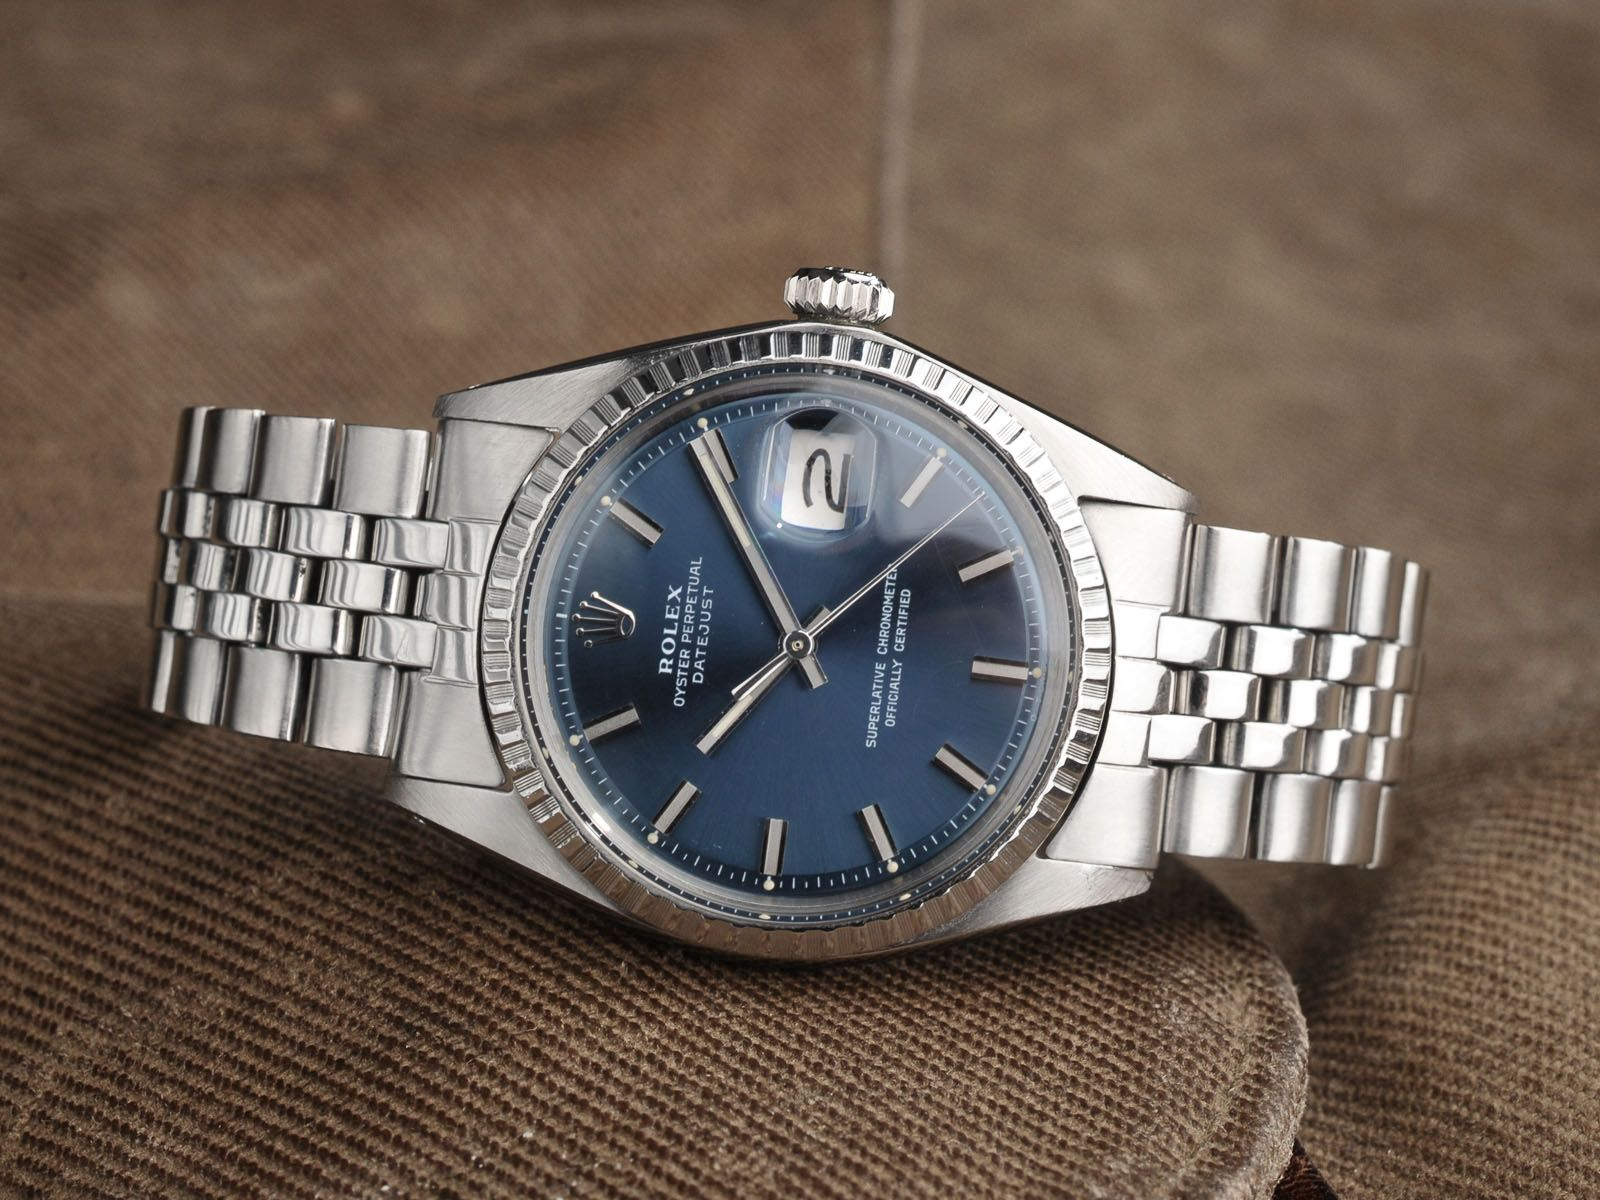 An Amazing Vintage Rolex 1603 Datejust With Blue Sigma Dial And Wide